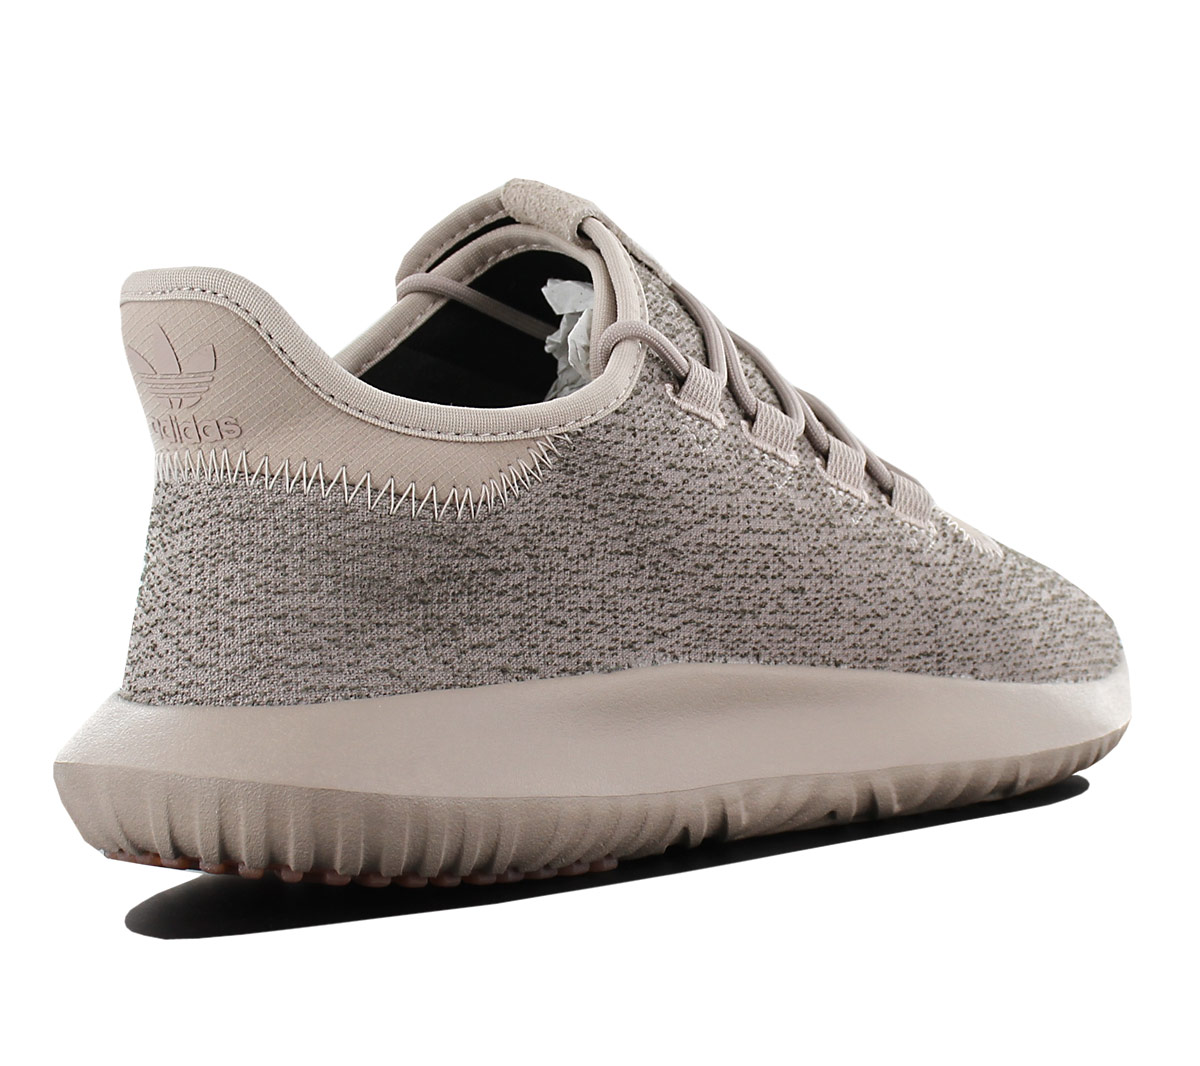 buy online 9ec68 03e88 Adidas Originals Tubular Shadow Sneaker Shoe Grey Mens Women